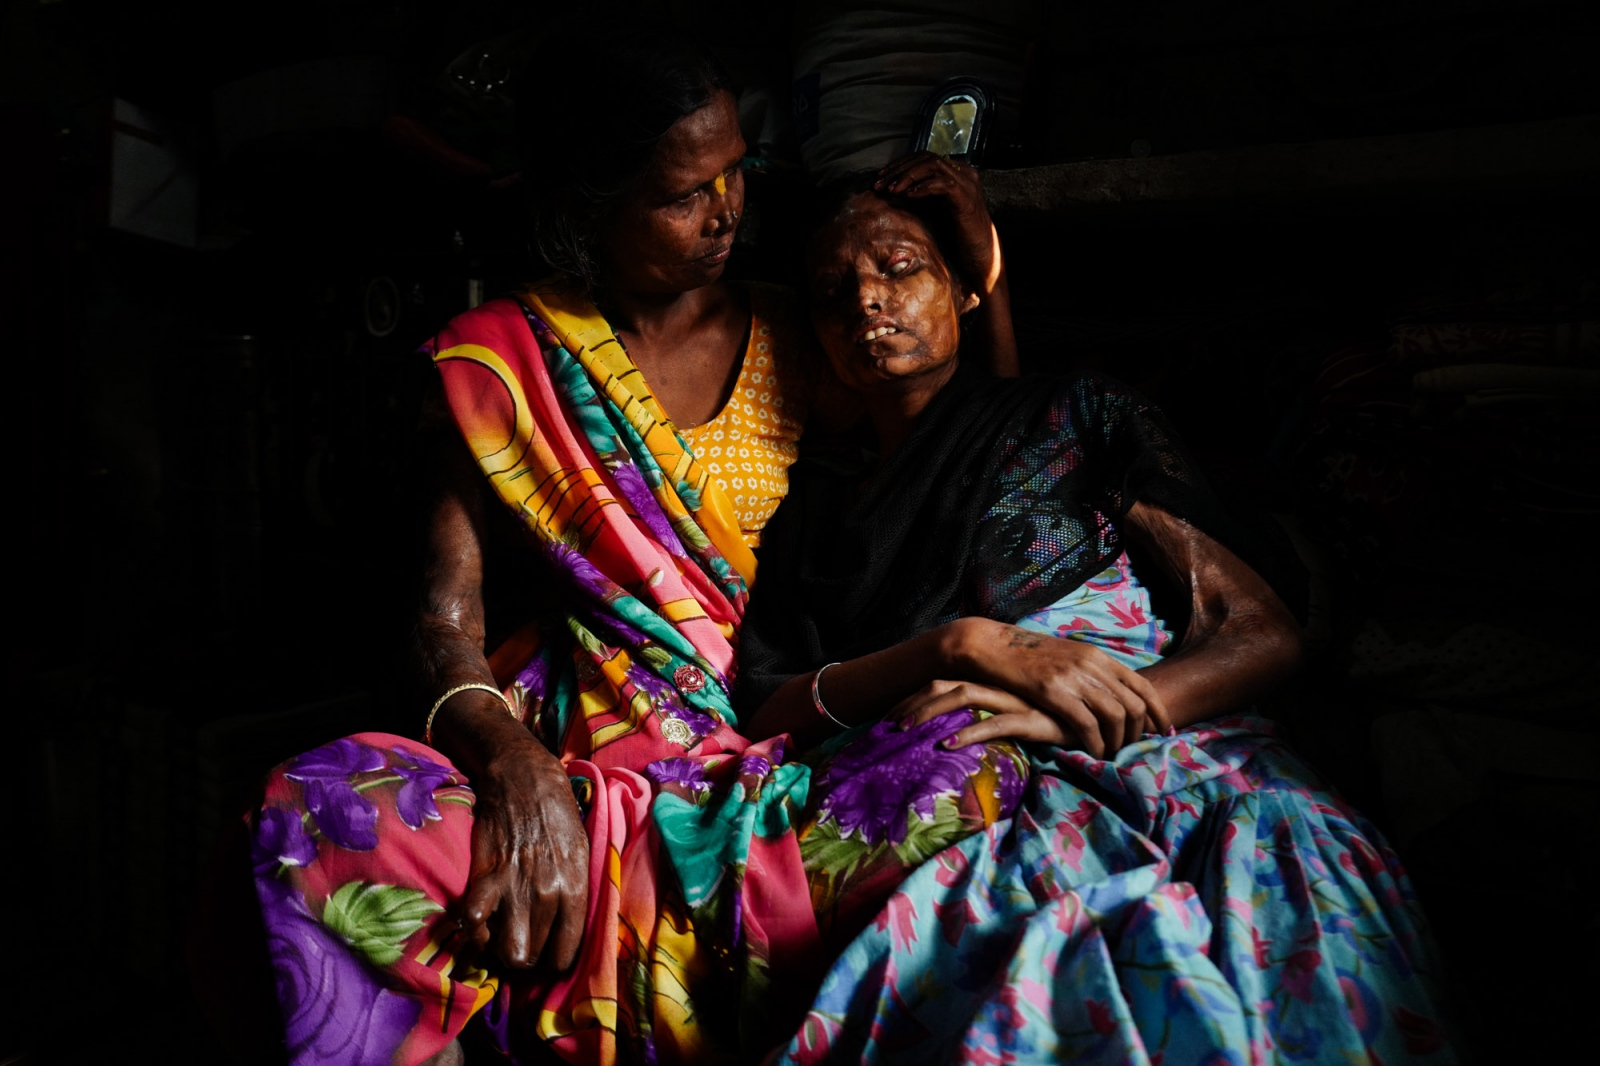 Agra, Uttar Pradesh, India. 04 November 2015. Gita, 45, on the left, holding her blind daughter Nitu, 24, posing for a portrait. They are both victims of Gita's husband's, a violent and alcoholic who, out of jealousy, threw acid at his wife, at Nitu and at Krishna, another daughter of 1 year old. Krishna died right after the attack, while Nitu, who was 3 years old back then, went blind. Gita and Nitu are both activist of the Stop Acid Attack campaign, and they work at the Sheroes Hangout Cafè.